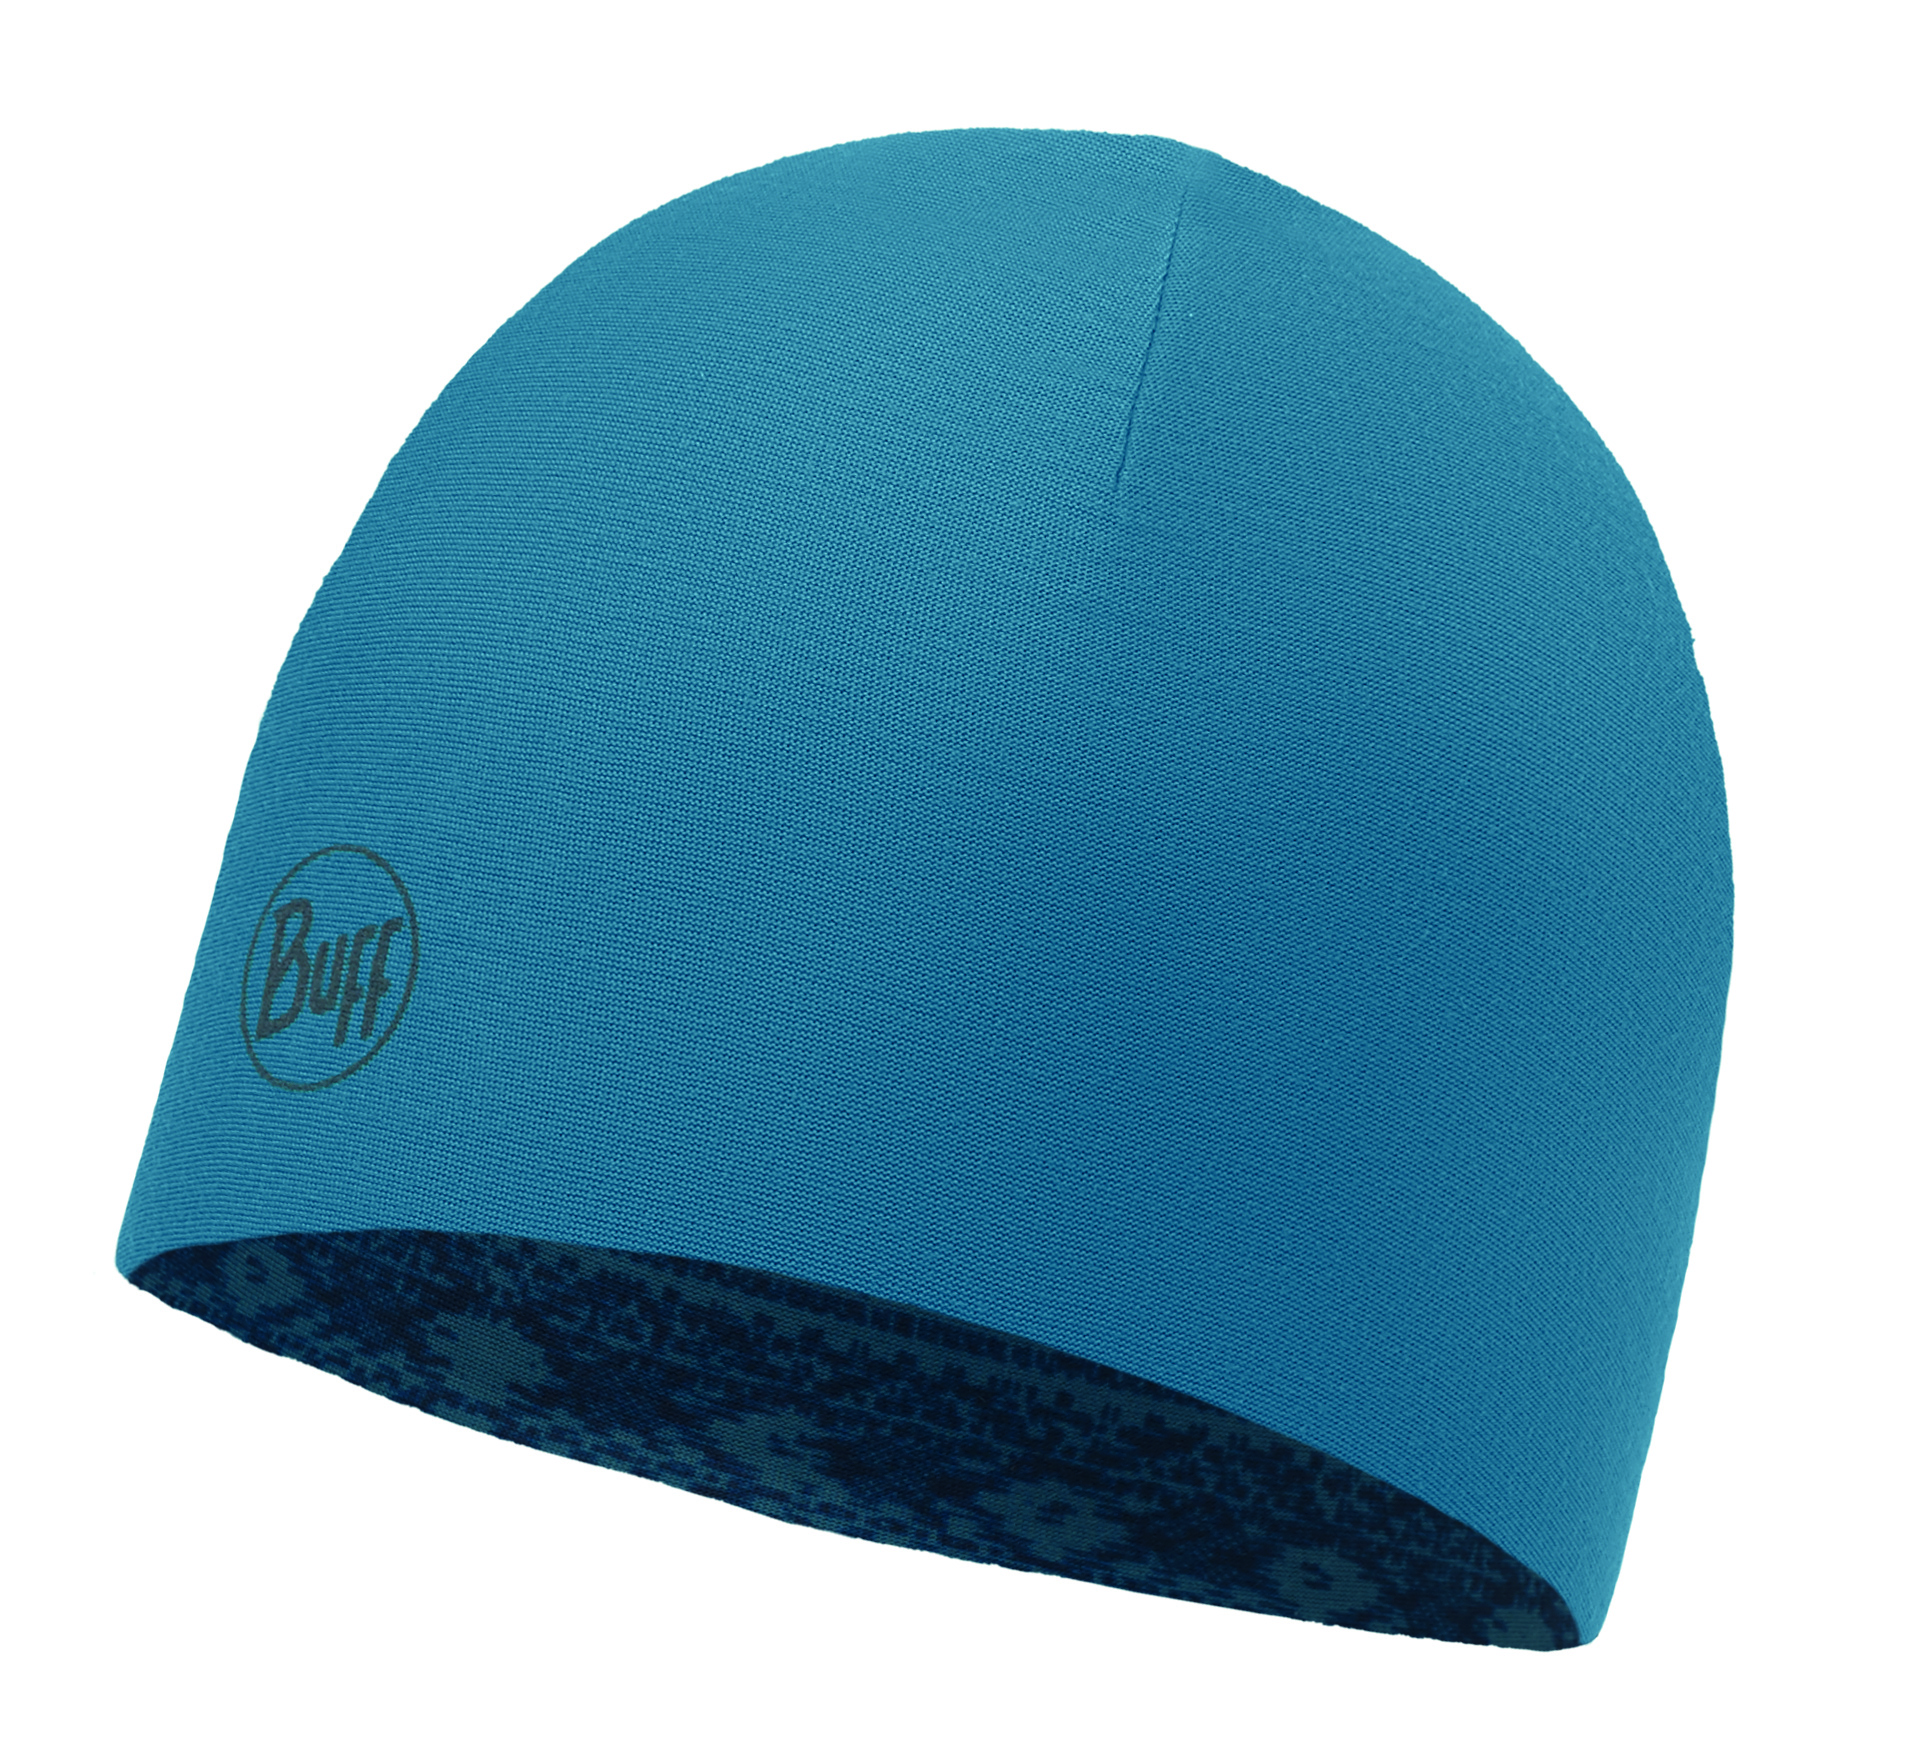 Шапка Buff Microfiber Reversible Hat Athor Lake Blue от КАНТ